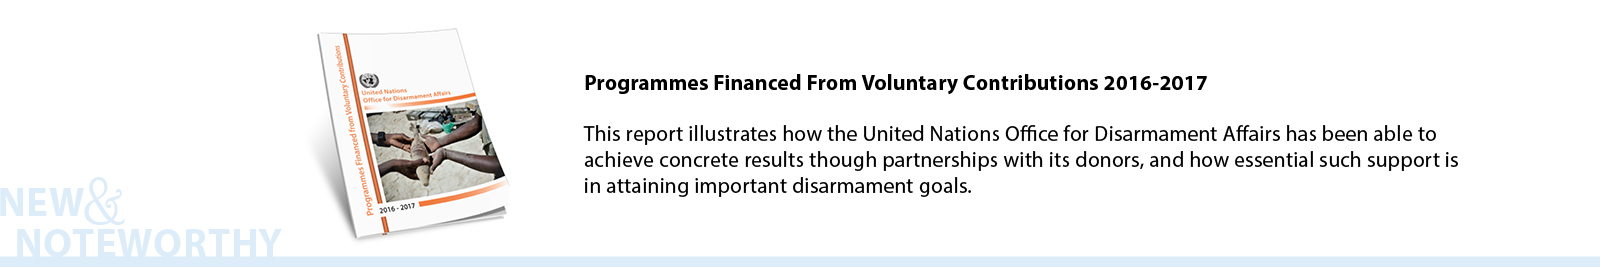 Programmes Financed From Voluntary Contributions 2016-2017 - This report illustrates how the United Nations Office for Disarmament Affairs has been able to achieve concrete results though partnerships with its donors, and how essential such support is in attaining important disarmament goals.